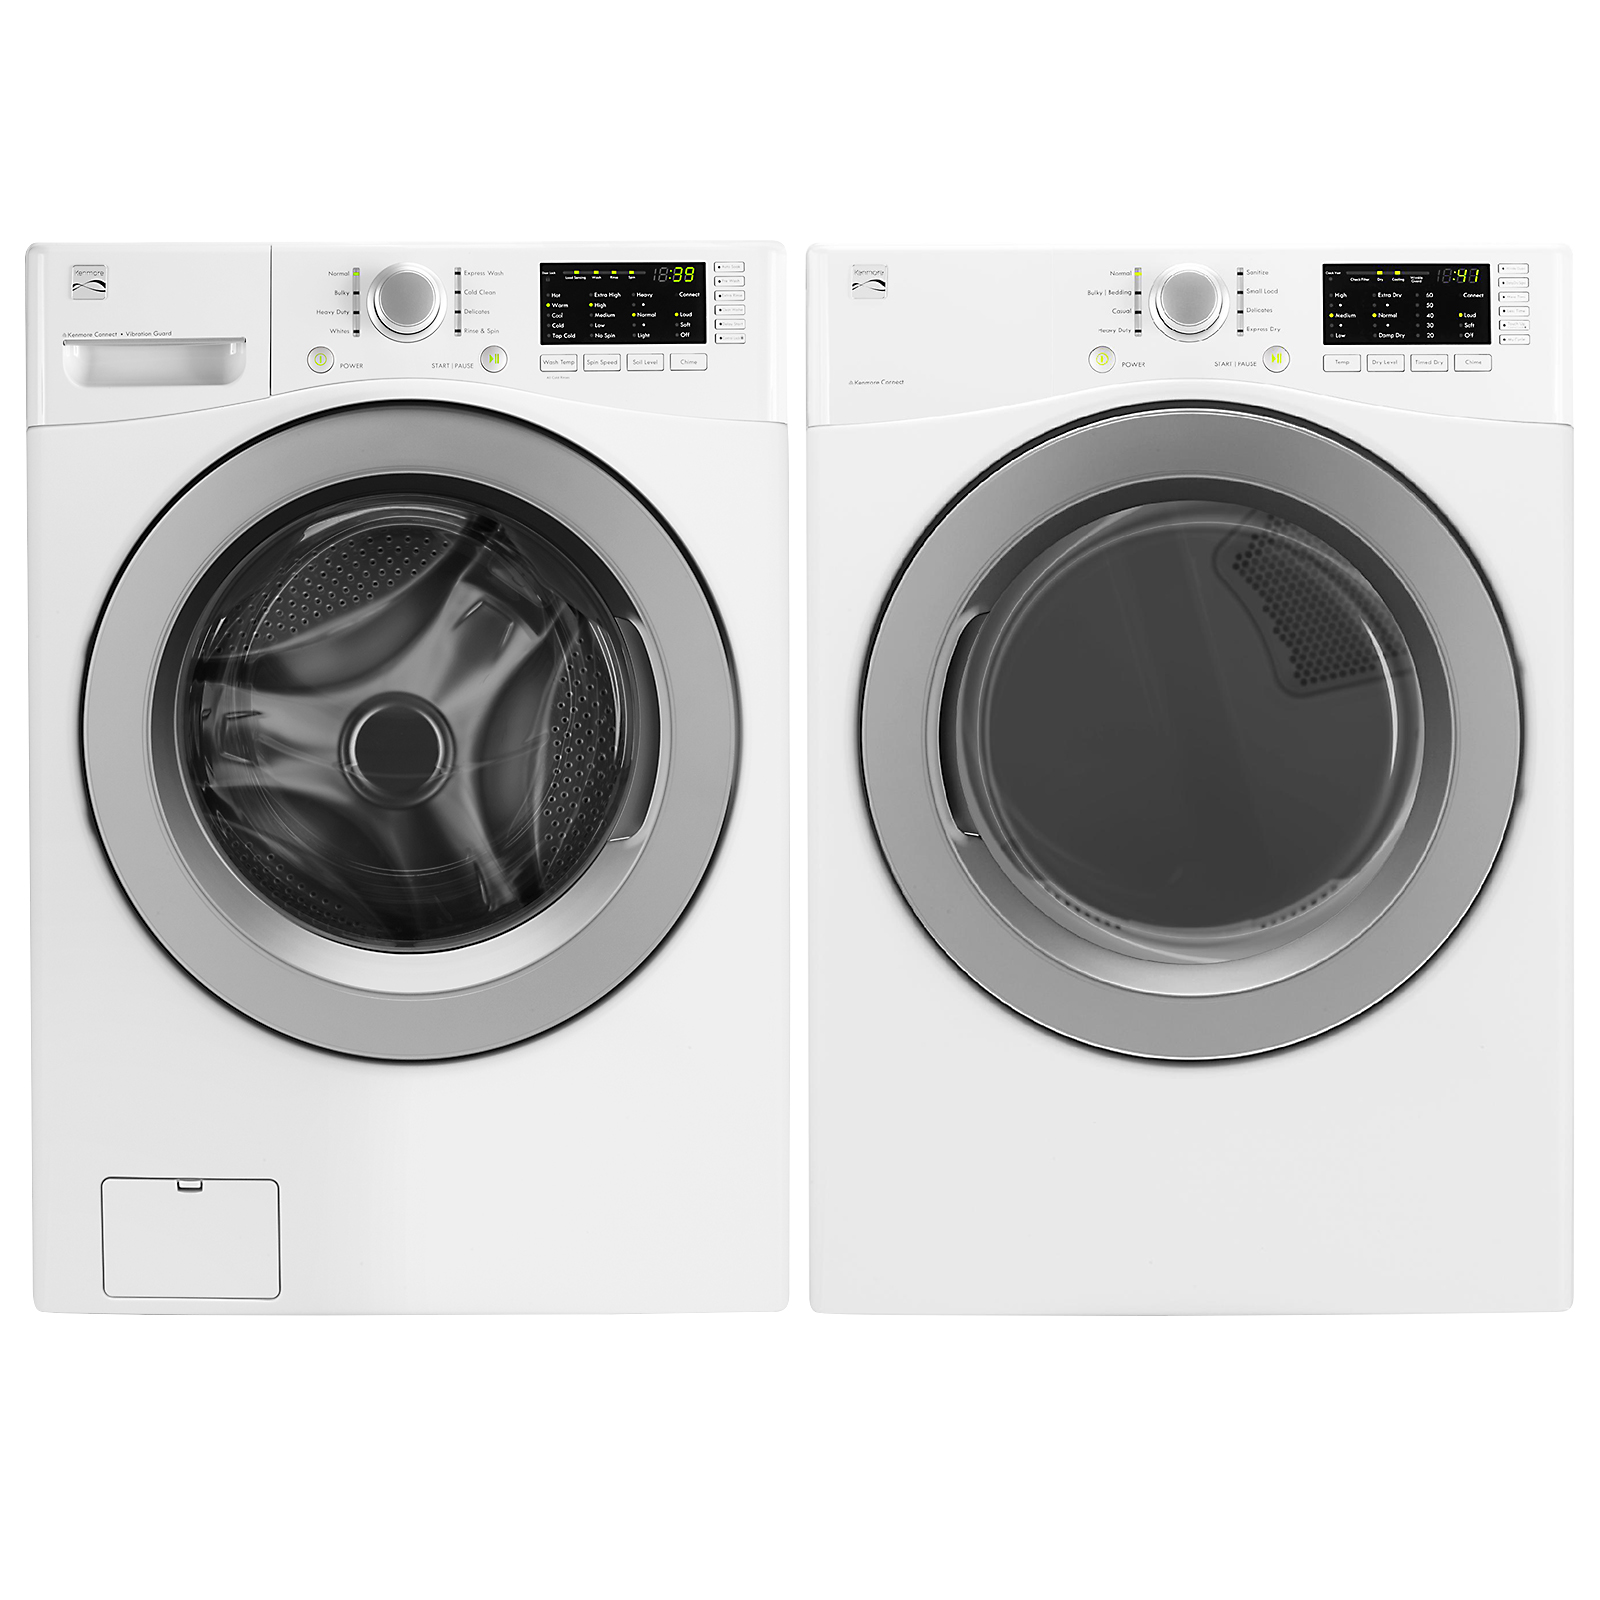 4.3 cu. ft. Front-Load Washer and 7.3 cu. ft. Dryer w/ Sensor Dry